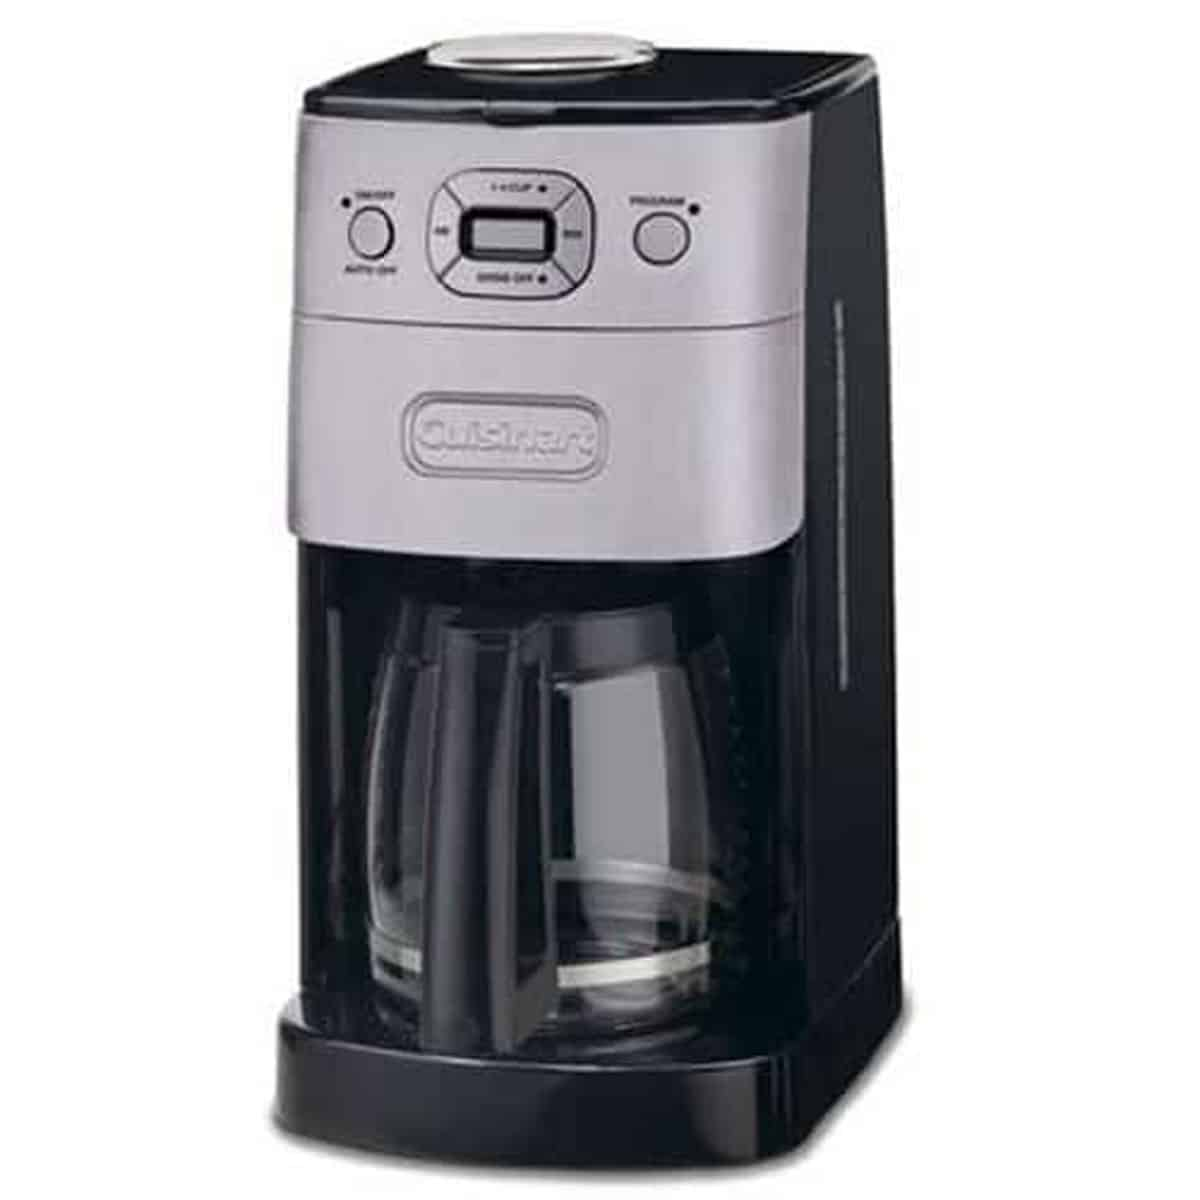 Cusinart 12-cup coffee pot.